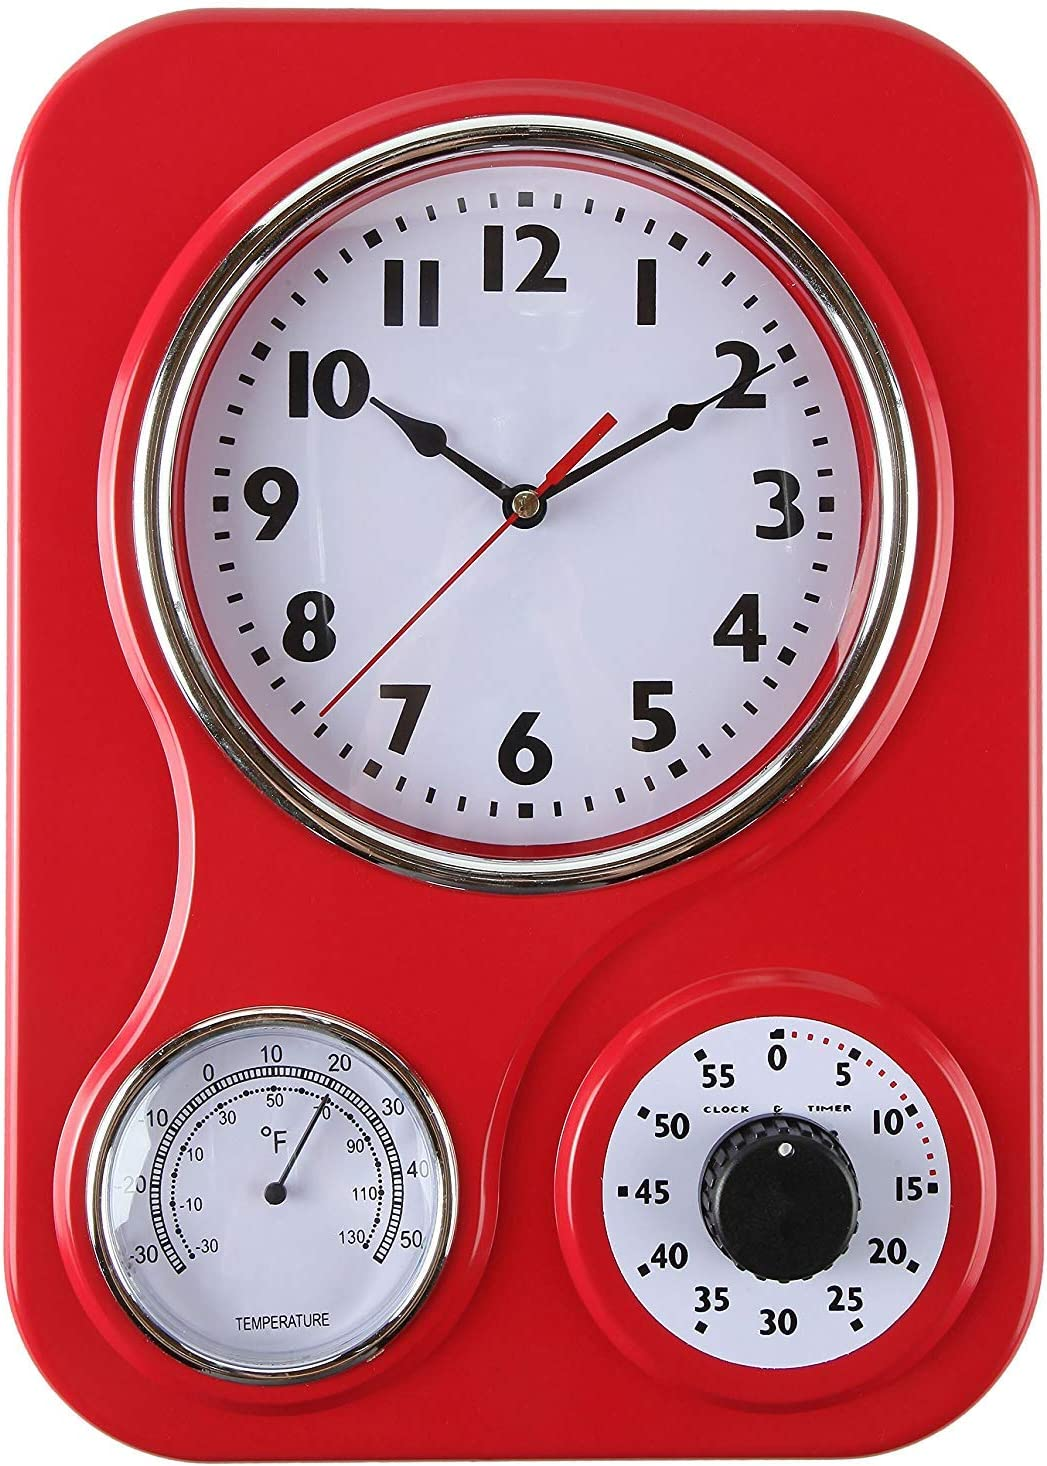 Lily's Home Retro Kitchen Wall Clock, with a Thermometer and 60-Minute Timer, Red (9.5 in x 13.3 in)